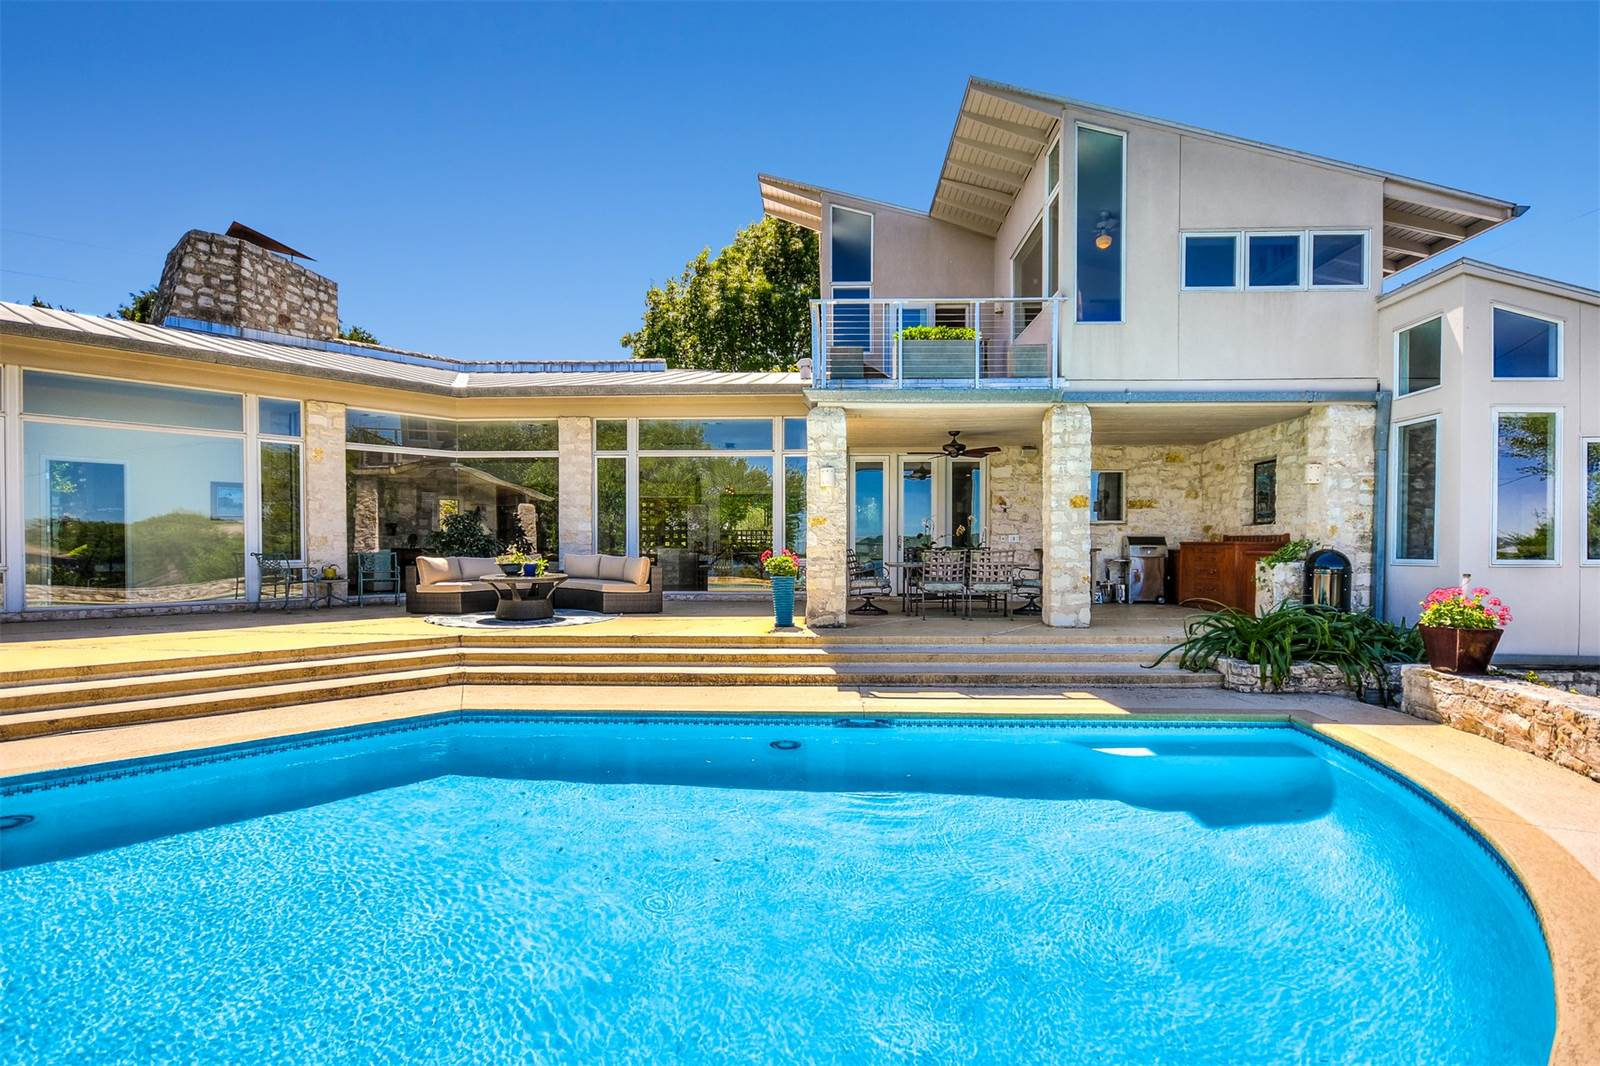 Large muti-leveled contemporary, white, with ground floor wall of windows, pool in front